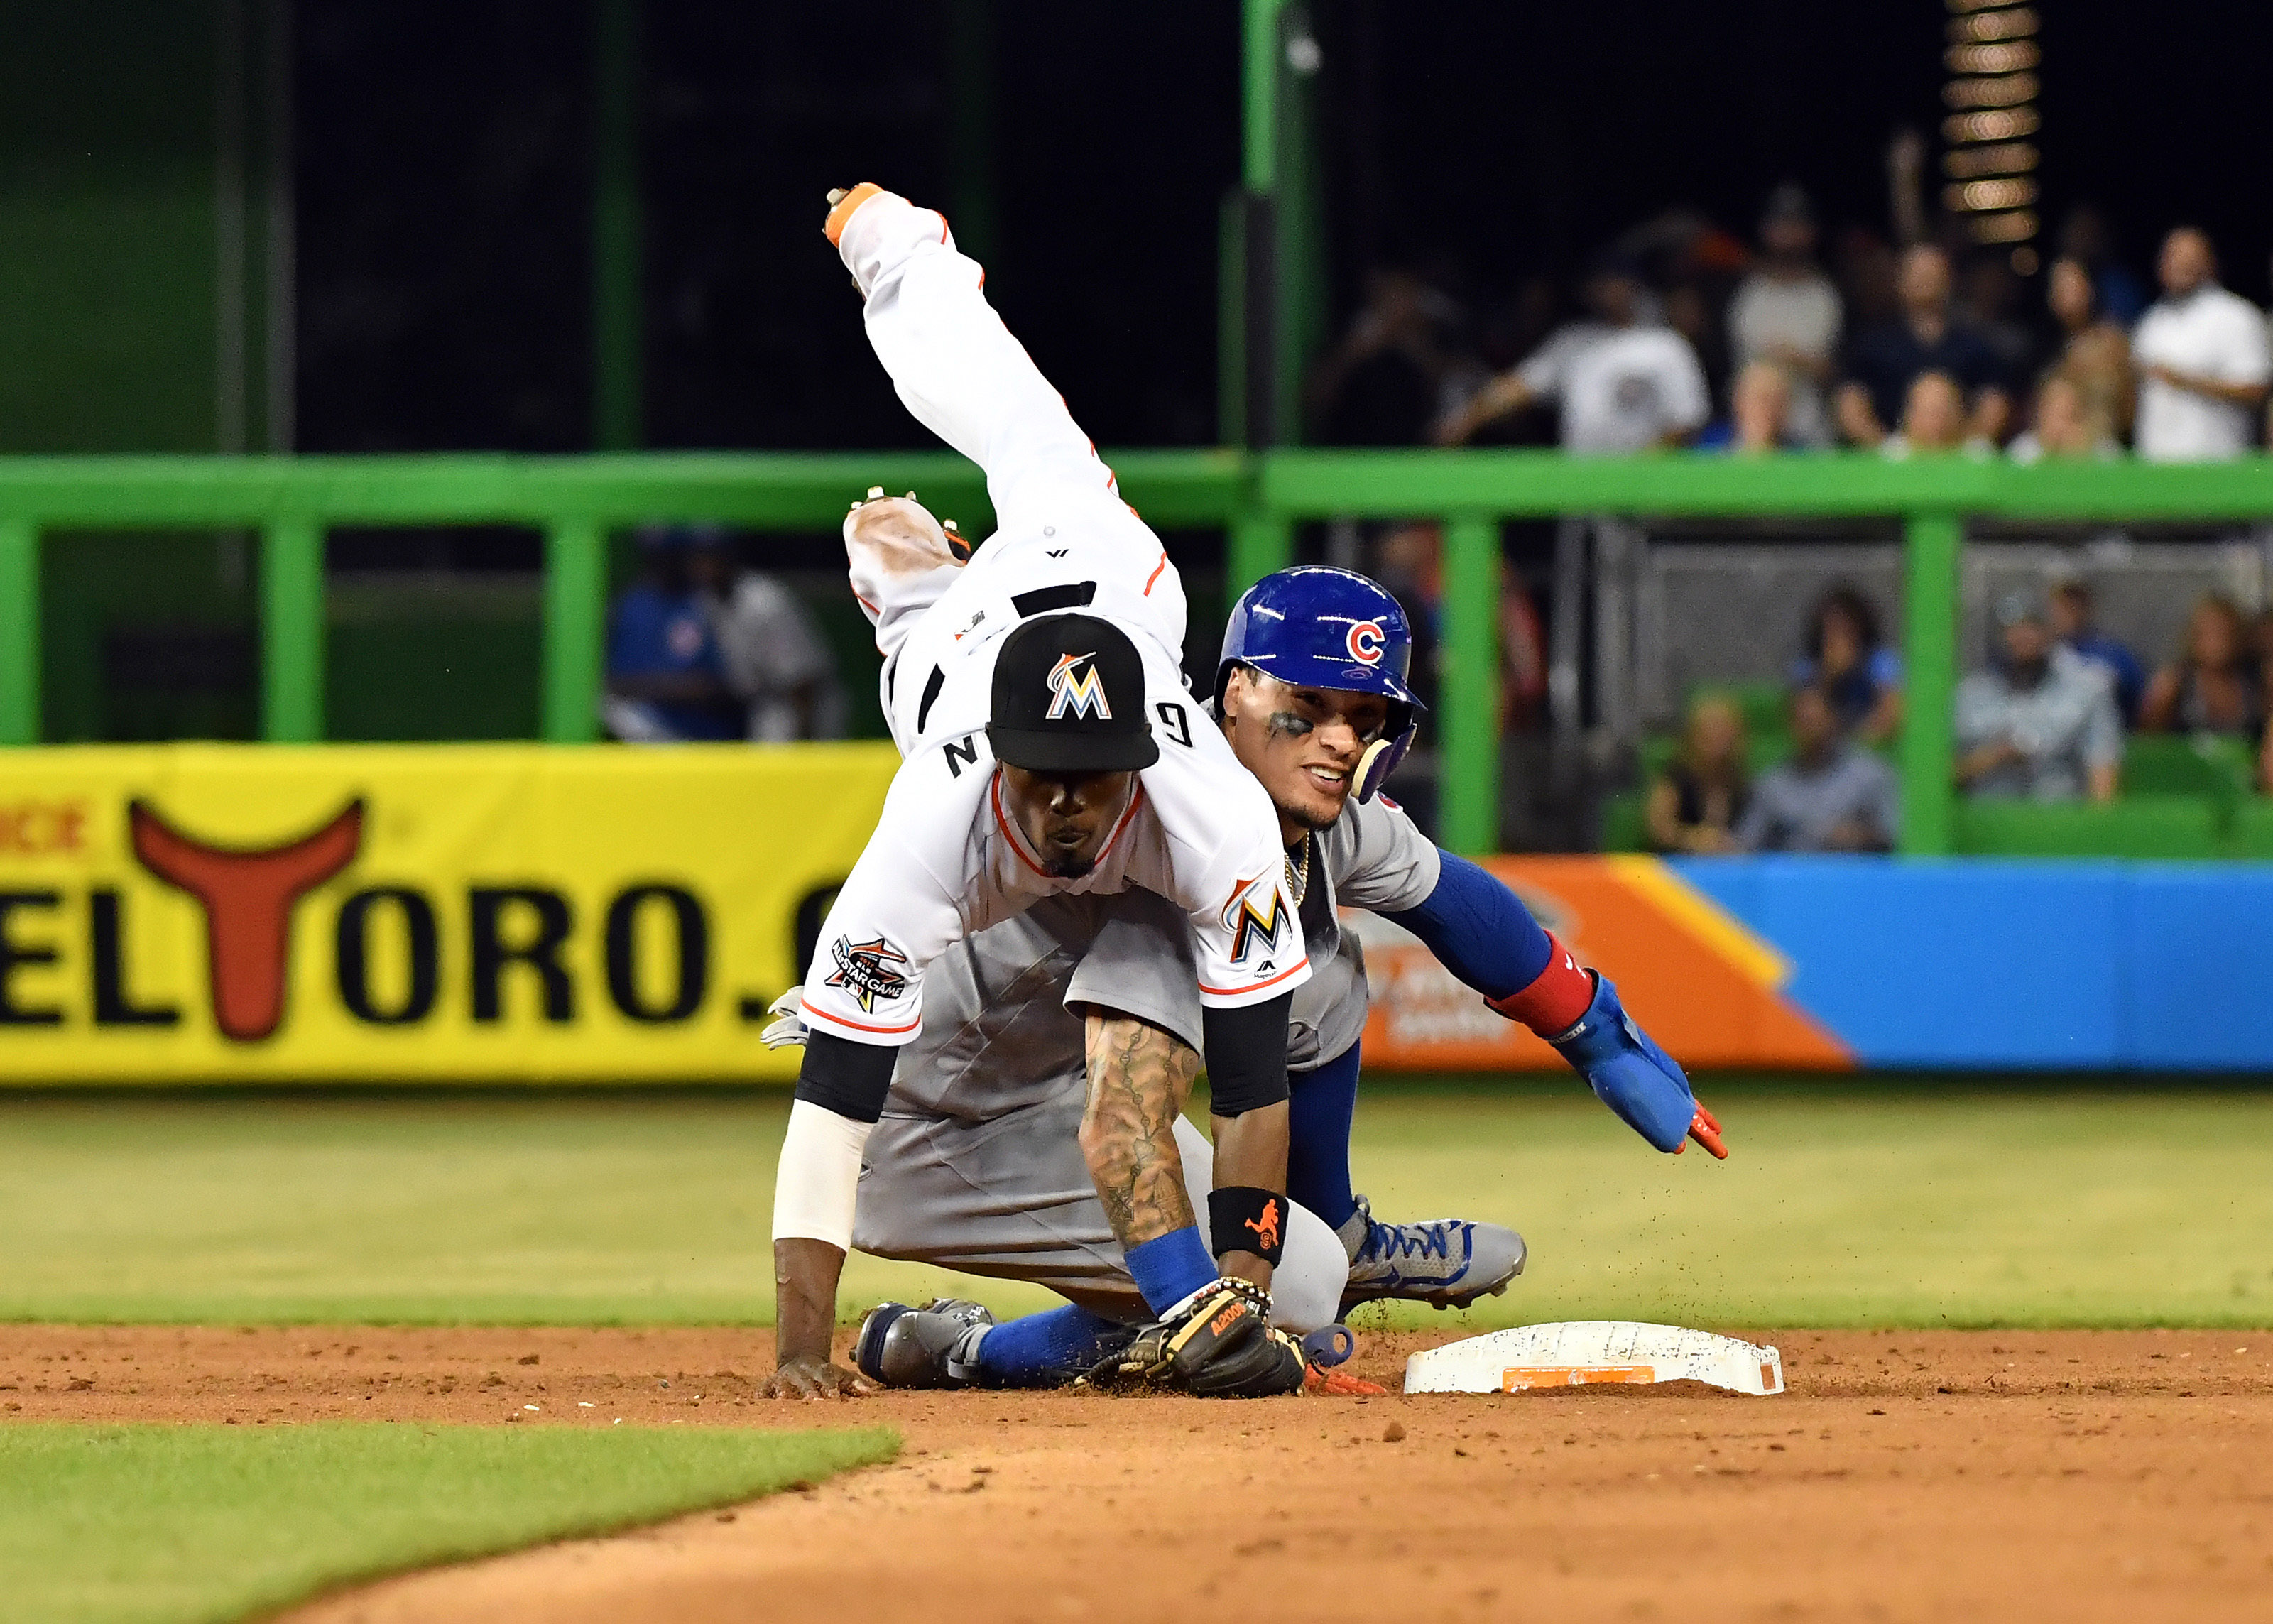 10127732-mlb-chicago-cubs-at-miami-marlins